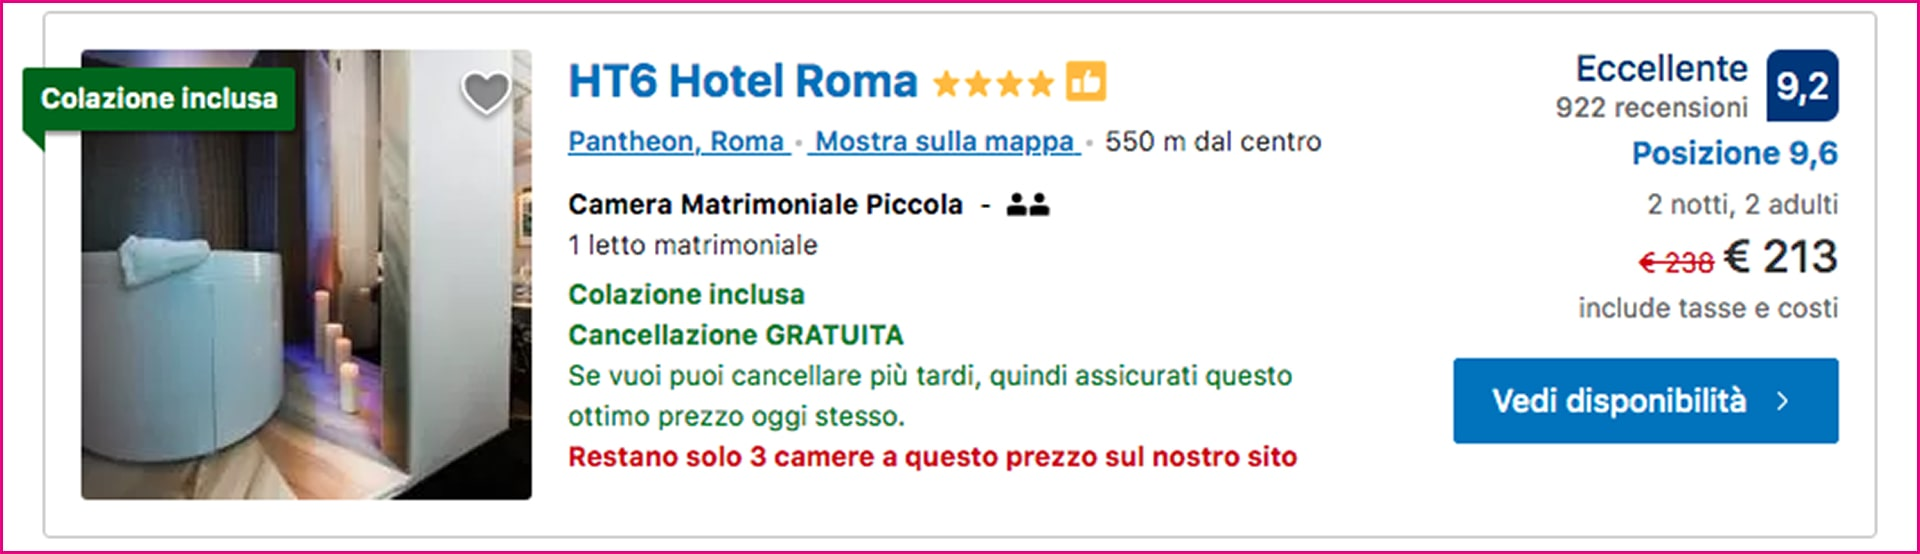 Esempio di UX writing Booking.com